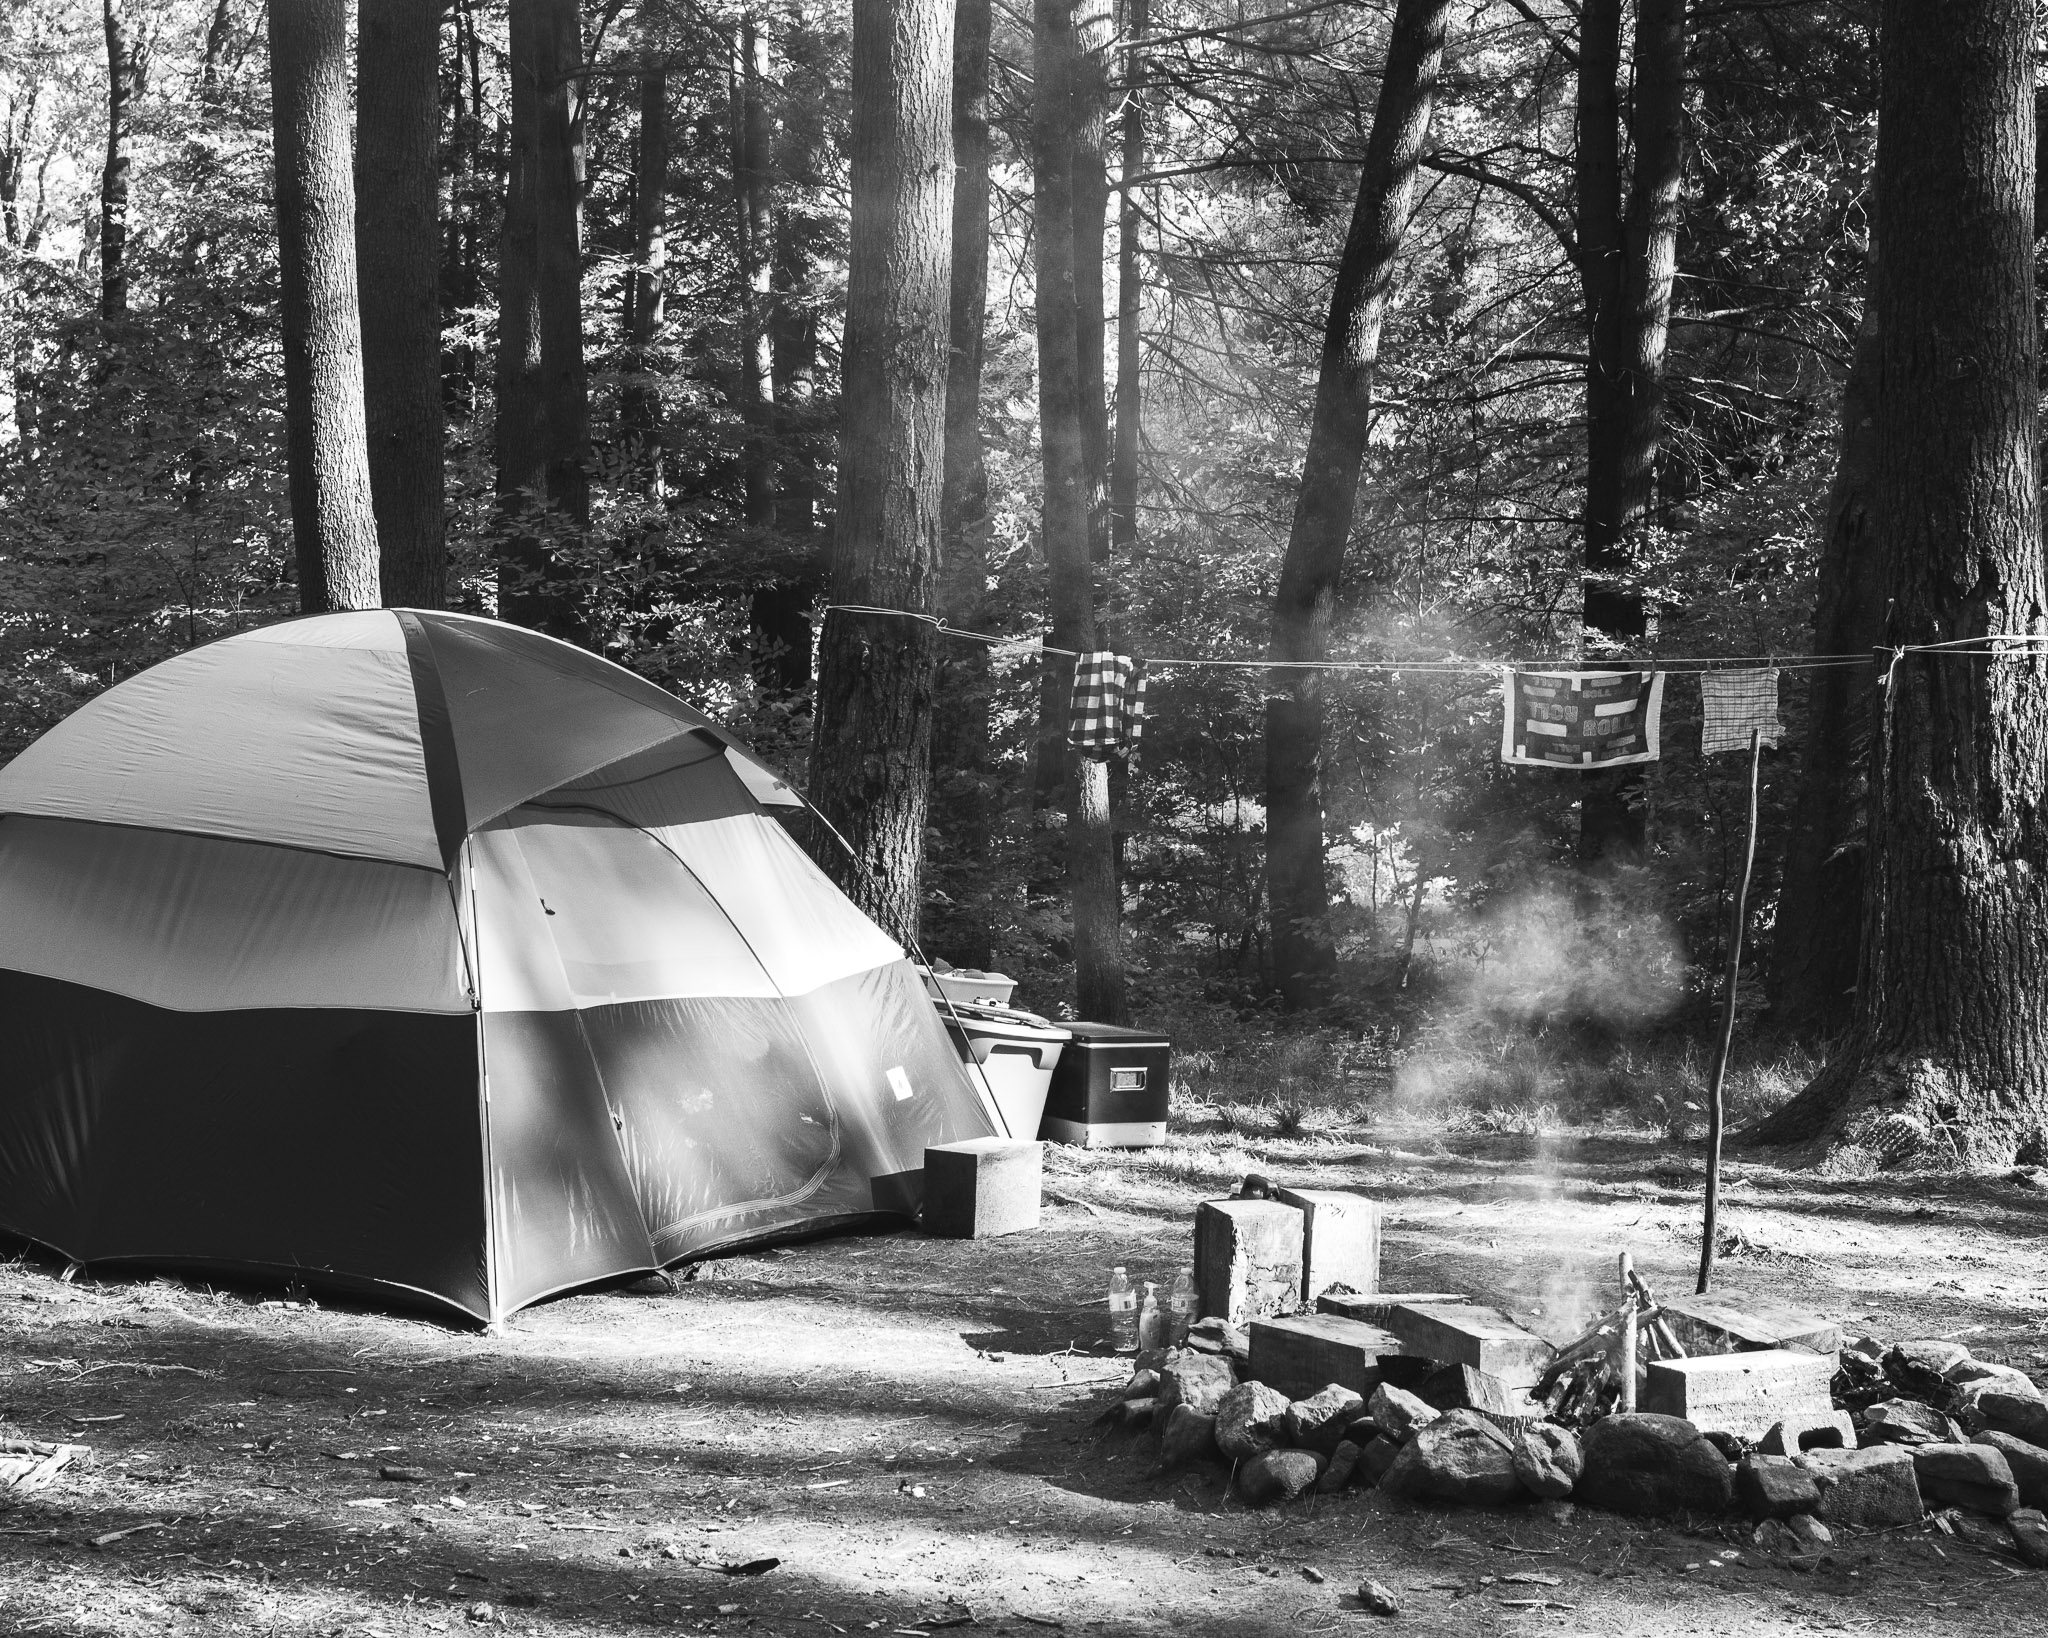 the campsite melanie and i had stayed at in allegheny national forest in may of 2017